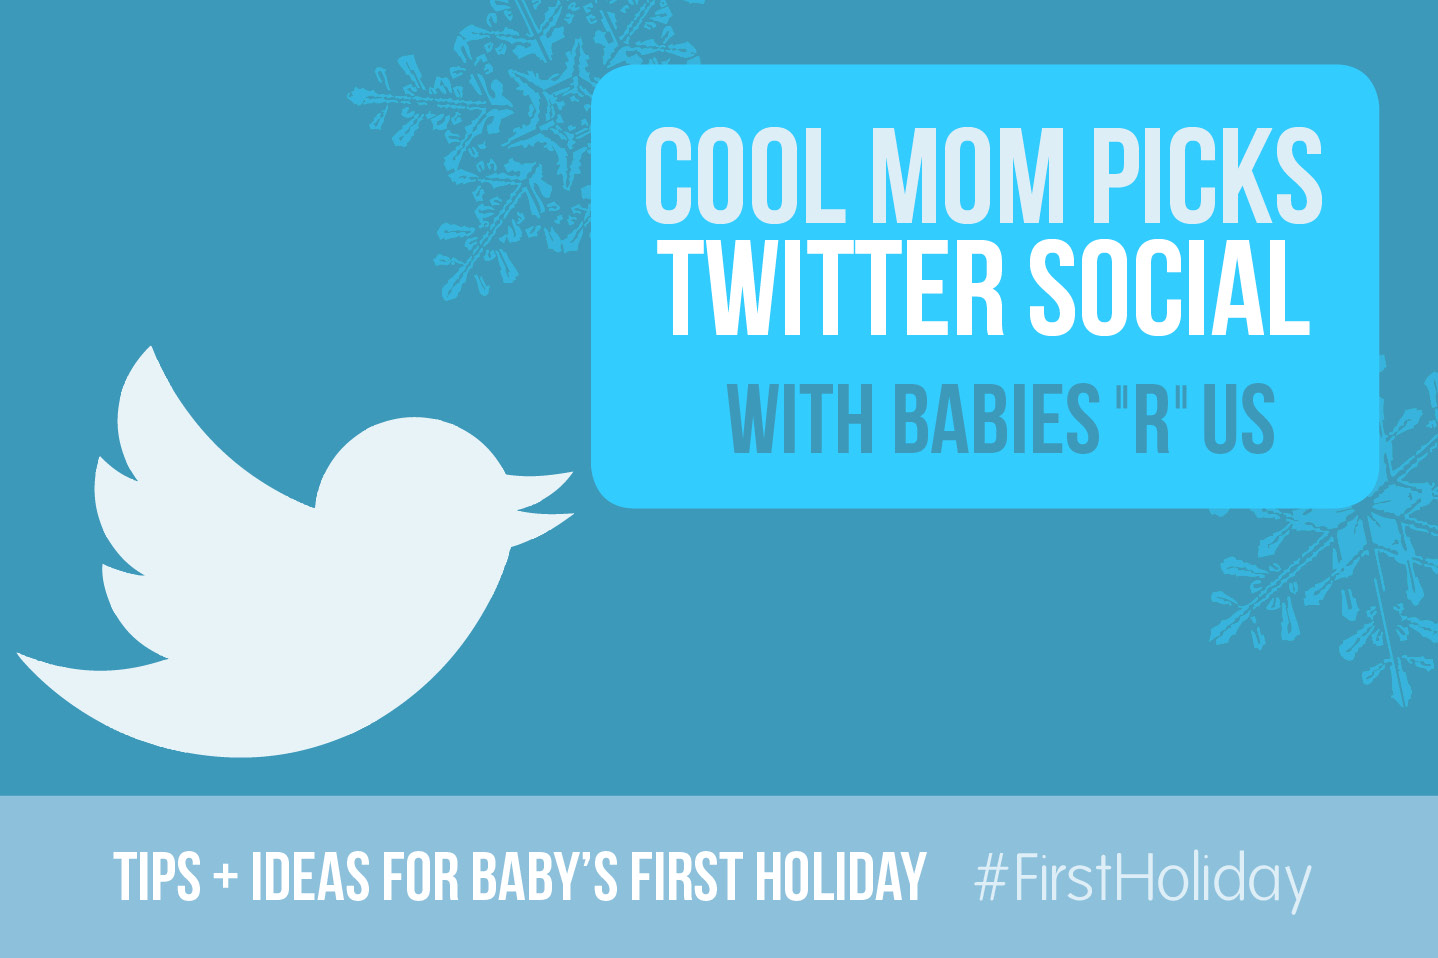 Join us for a Twitter Social to help you get ready for your baby's first holiday